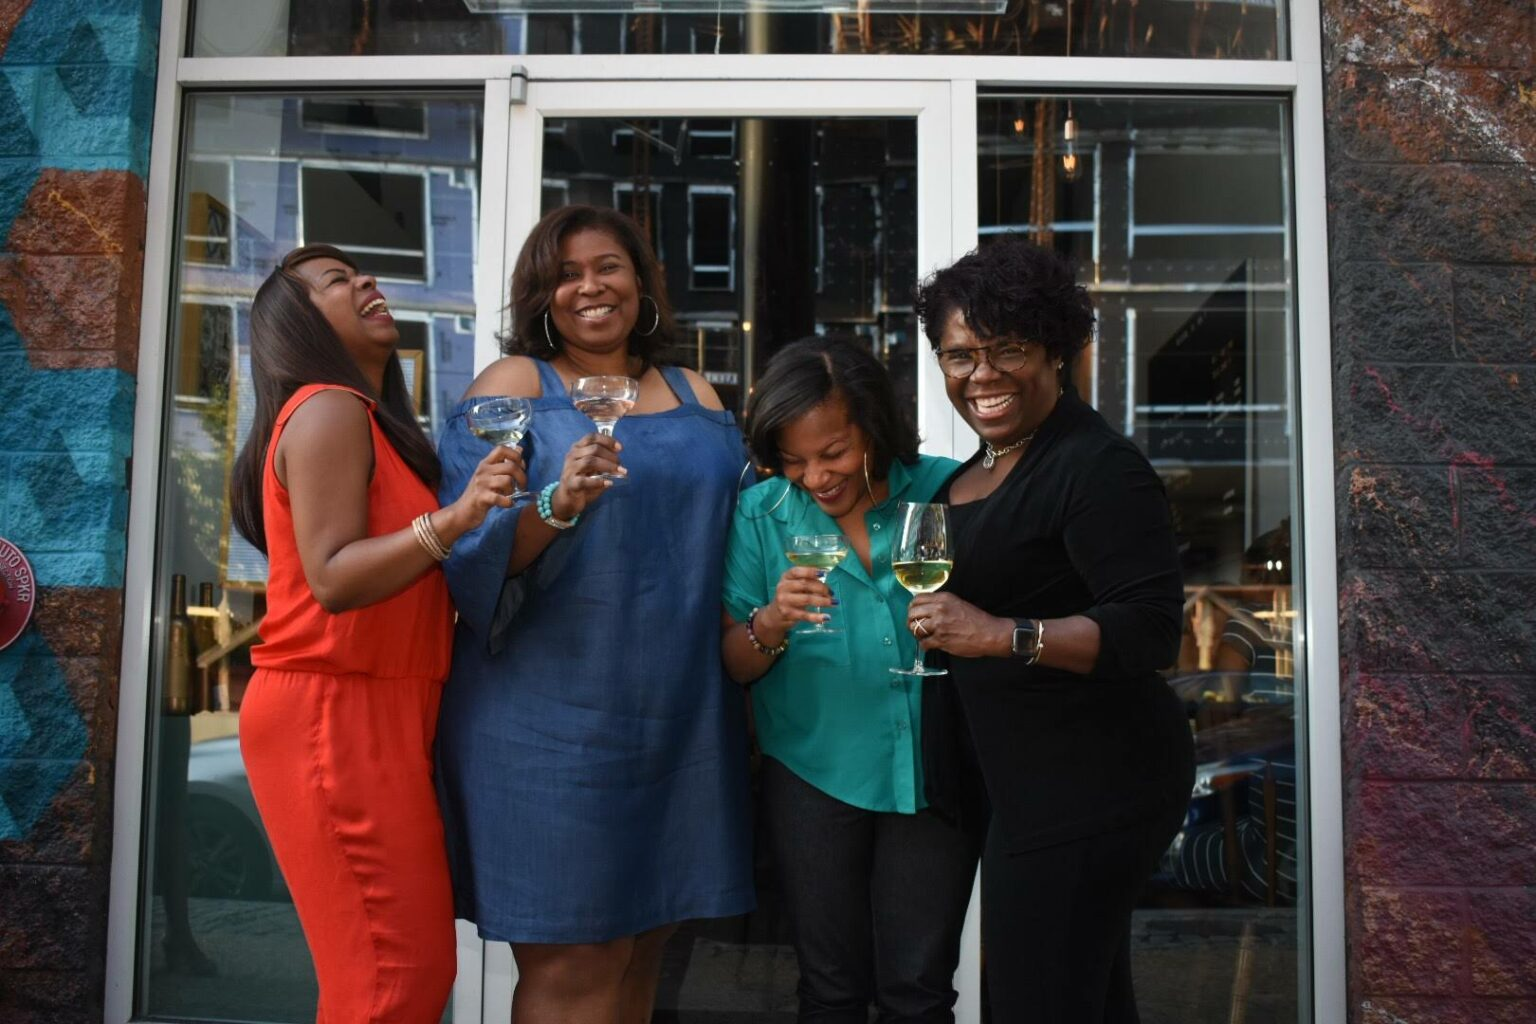 The Swirl Suite: More Than Just a Wine Podcast, It's About Community